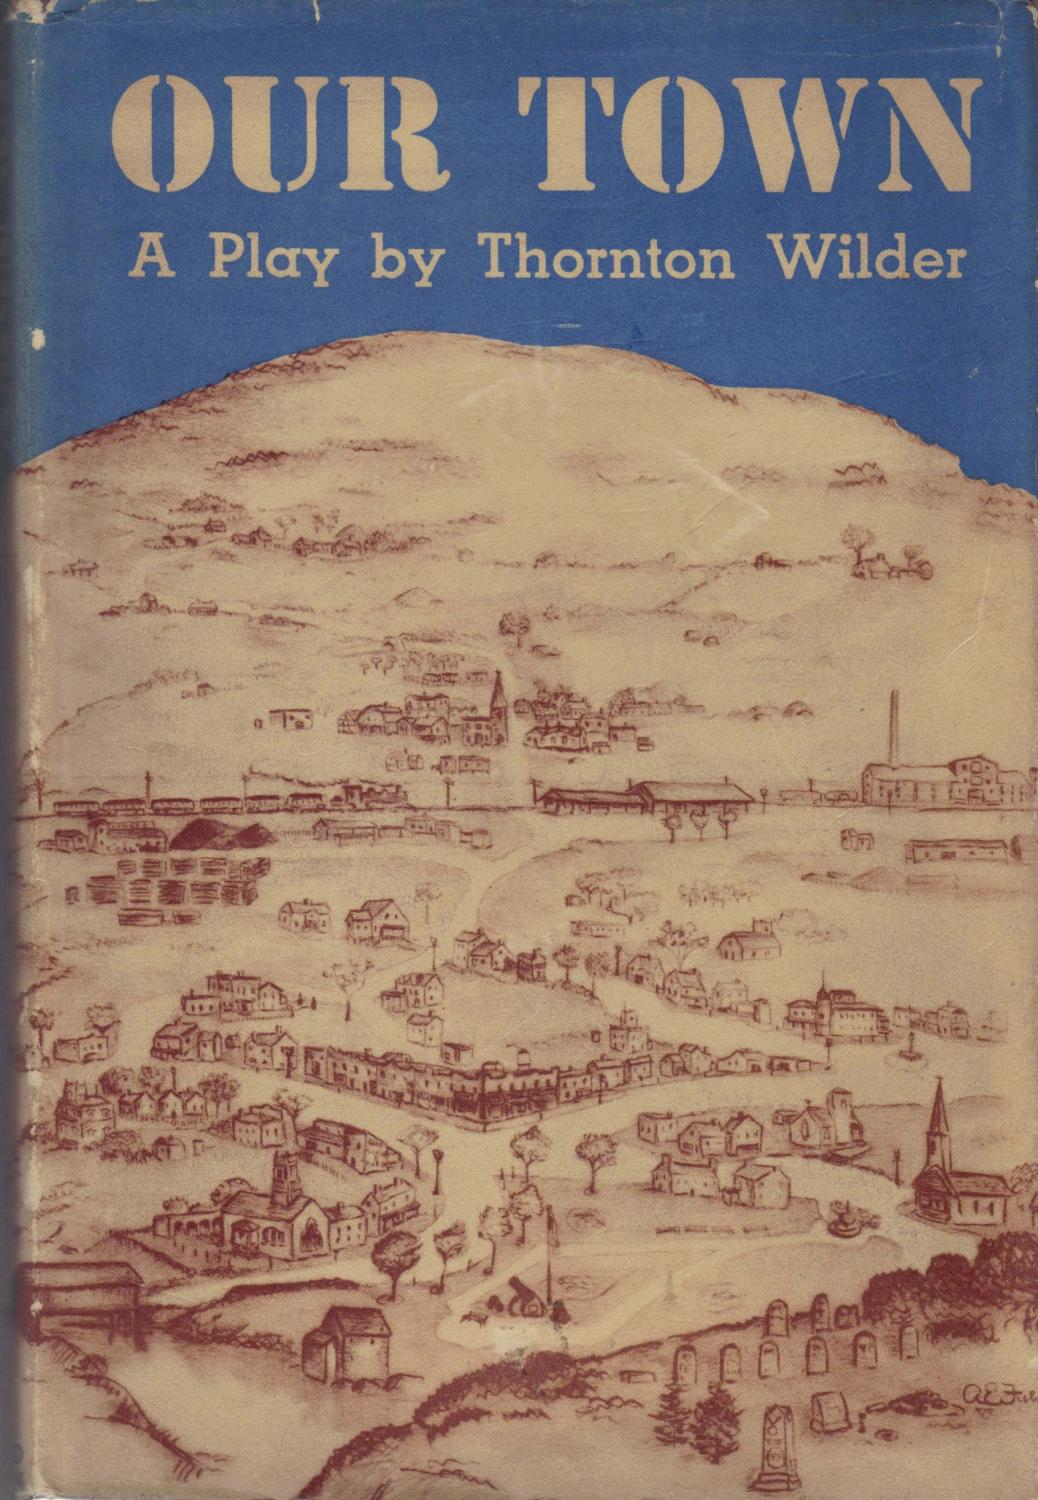 an analysis of our town by thornton wilder Free thornton wilder papers our town by thornton wilder - thornton our town analysis - our town is a play that takes place near the turn.